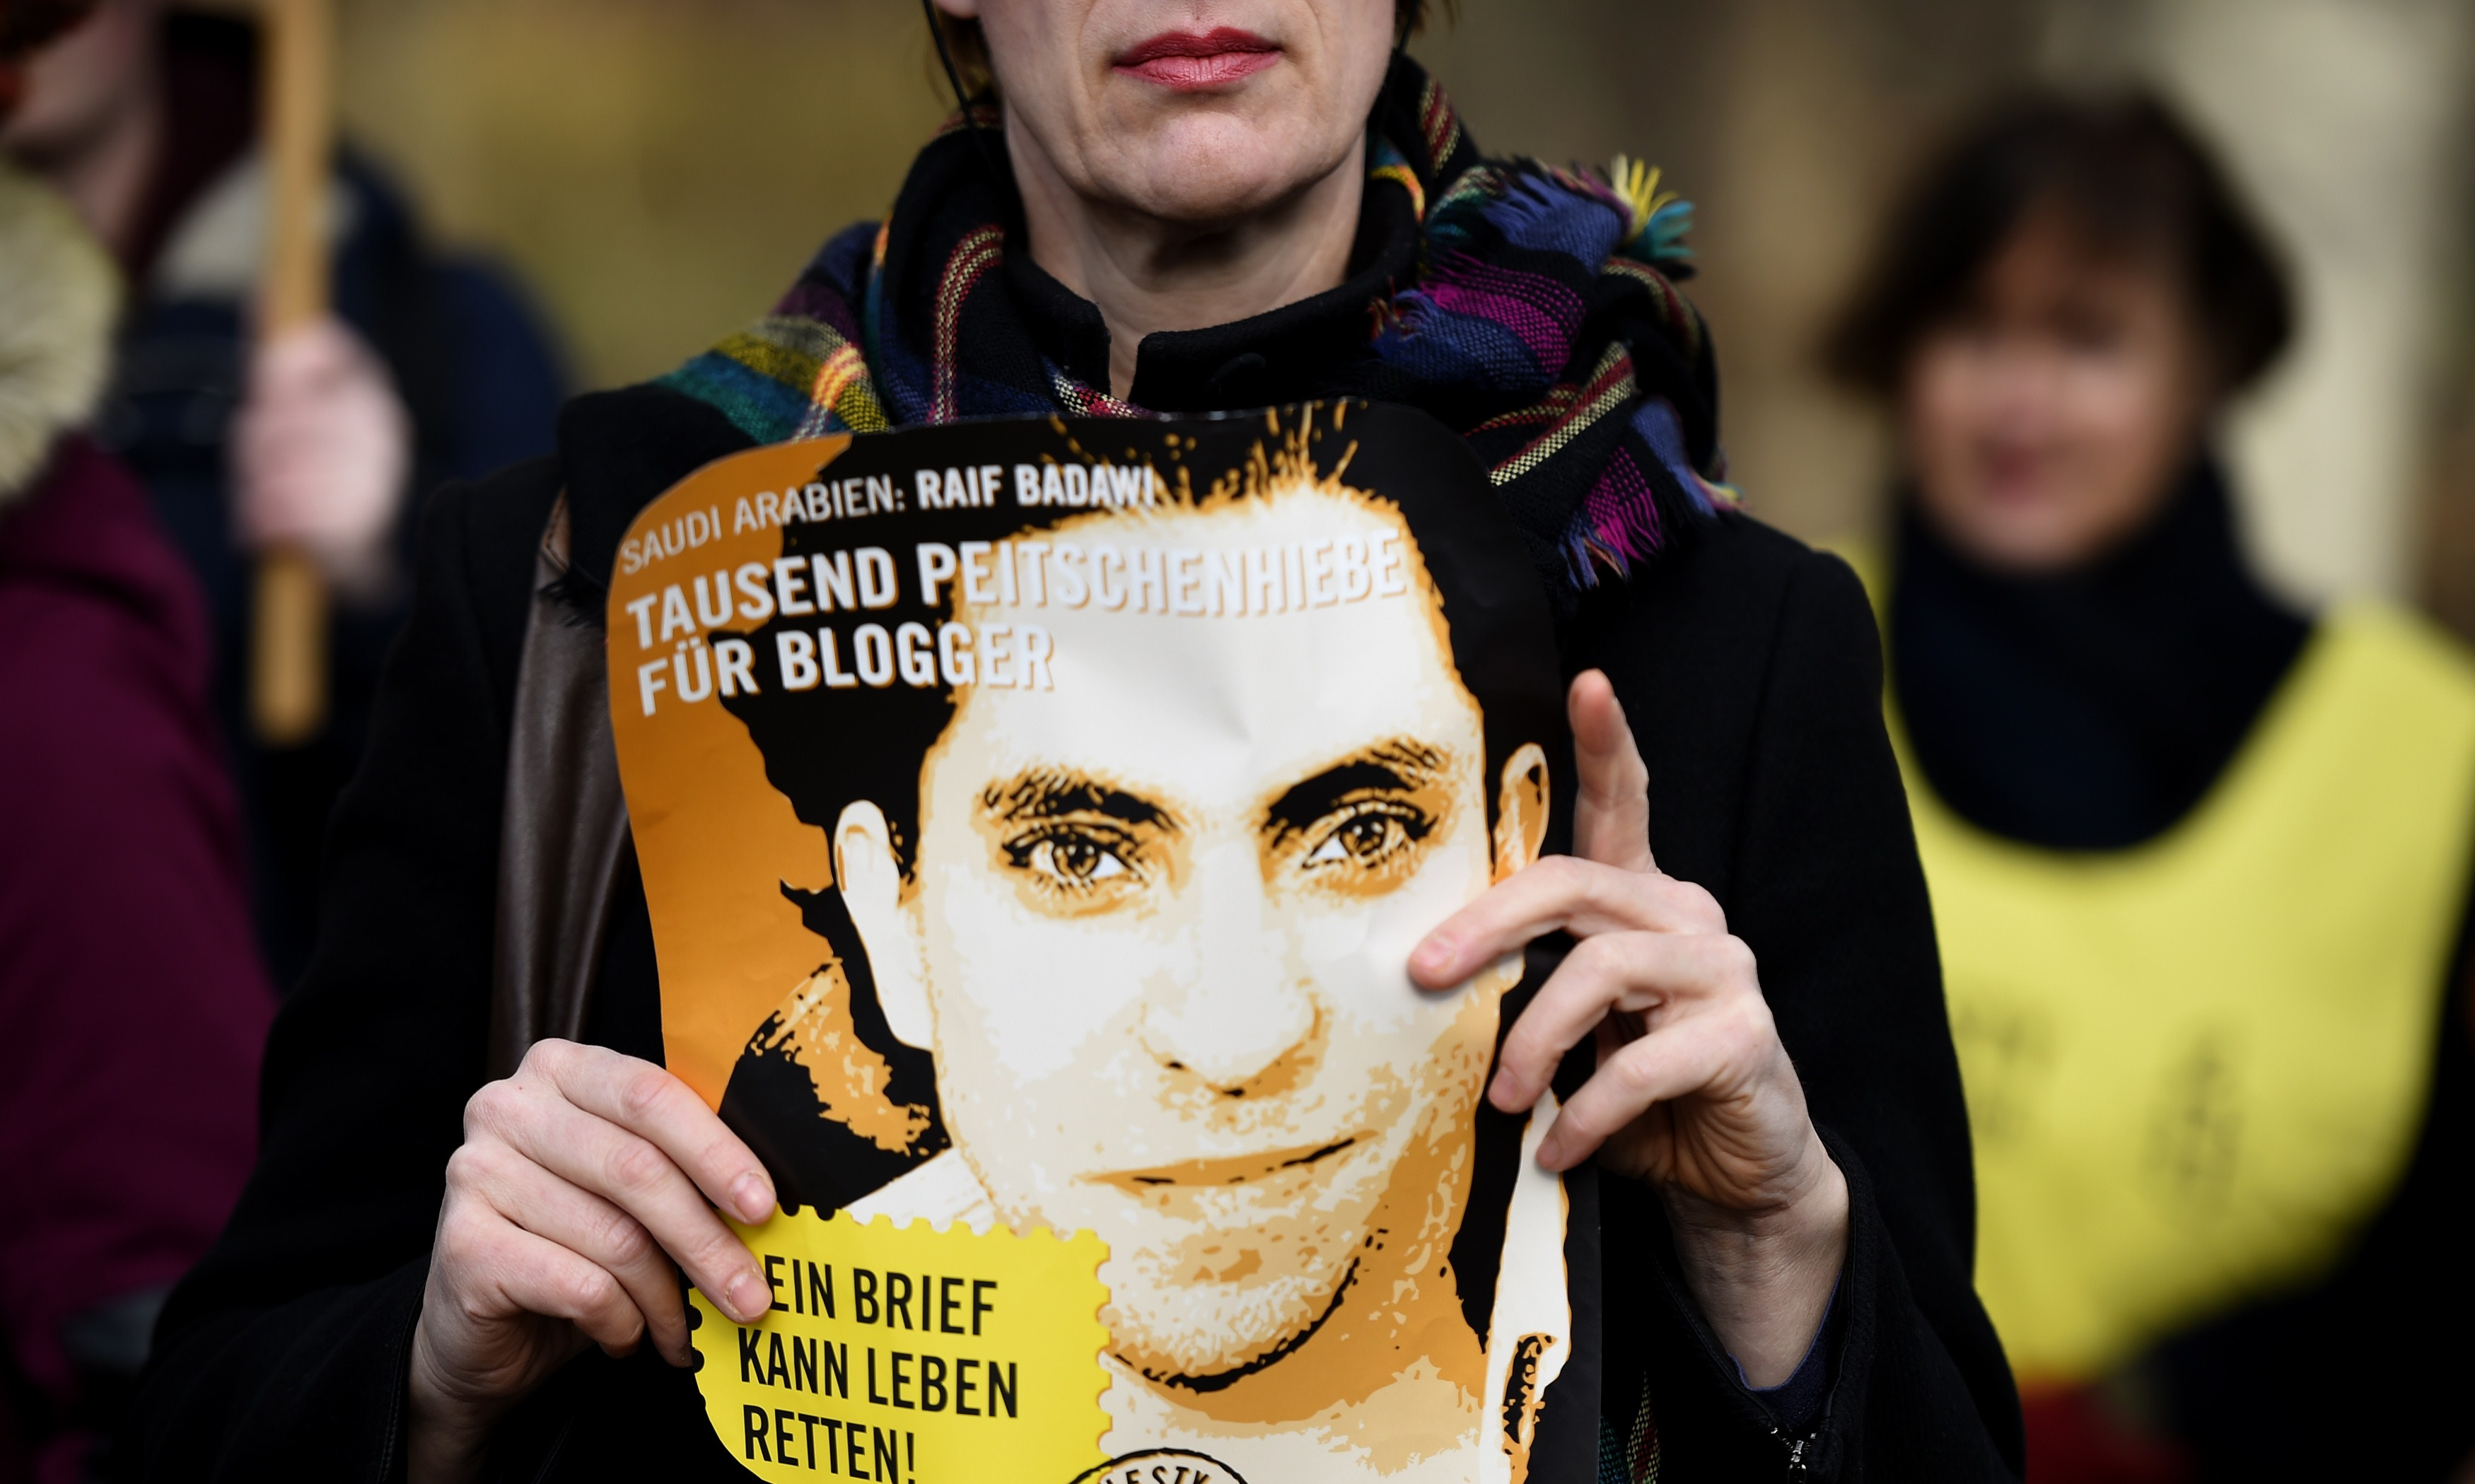 An Amnesty International activist holds a picture of Saudi blogger Raif Badawi during a protest against his flogging punishment on Jan. 29, 2015, in front of Saudi Arabia's embassy in Berlin